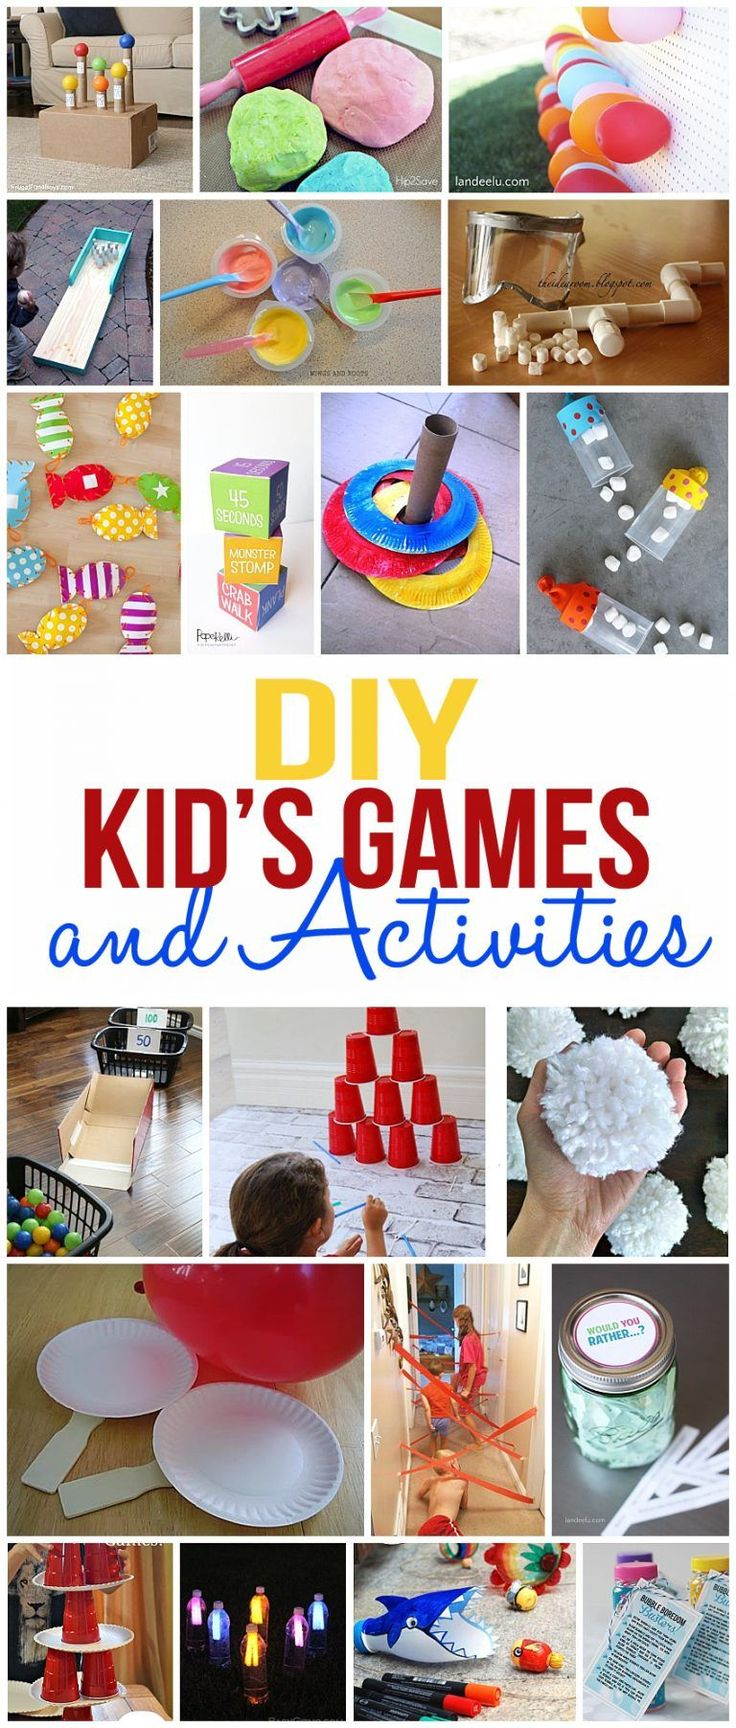 So many fun kids games and activities for you to create and play with your kids!...